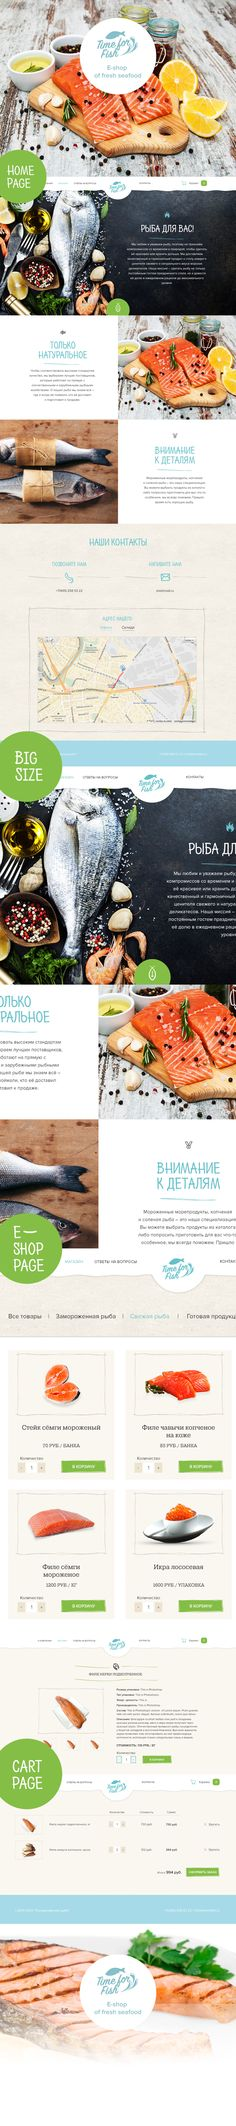 Time 4 Fish on Behance